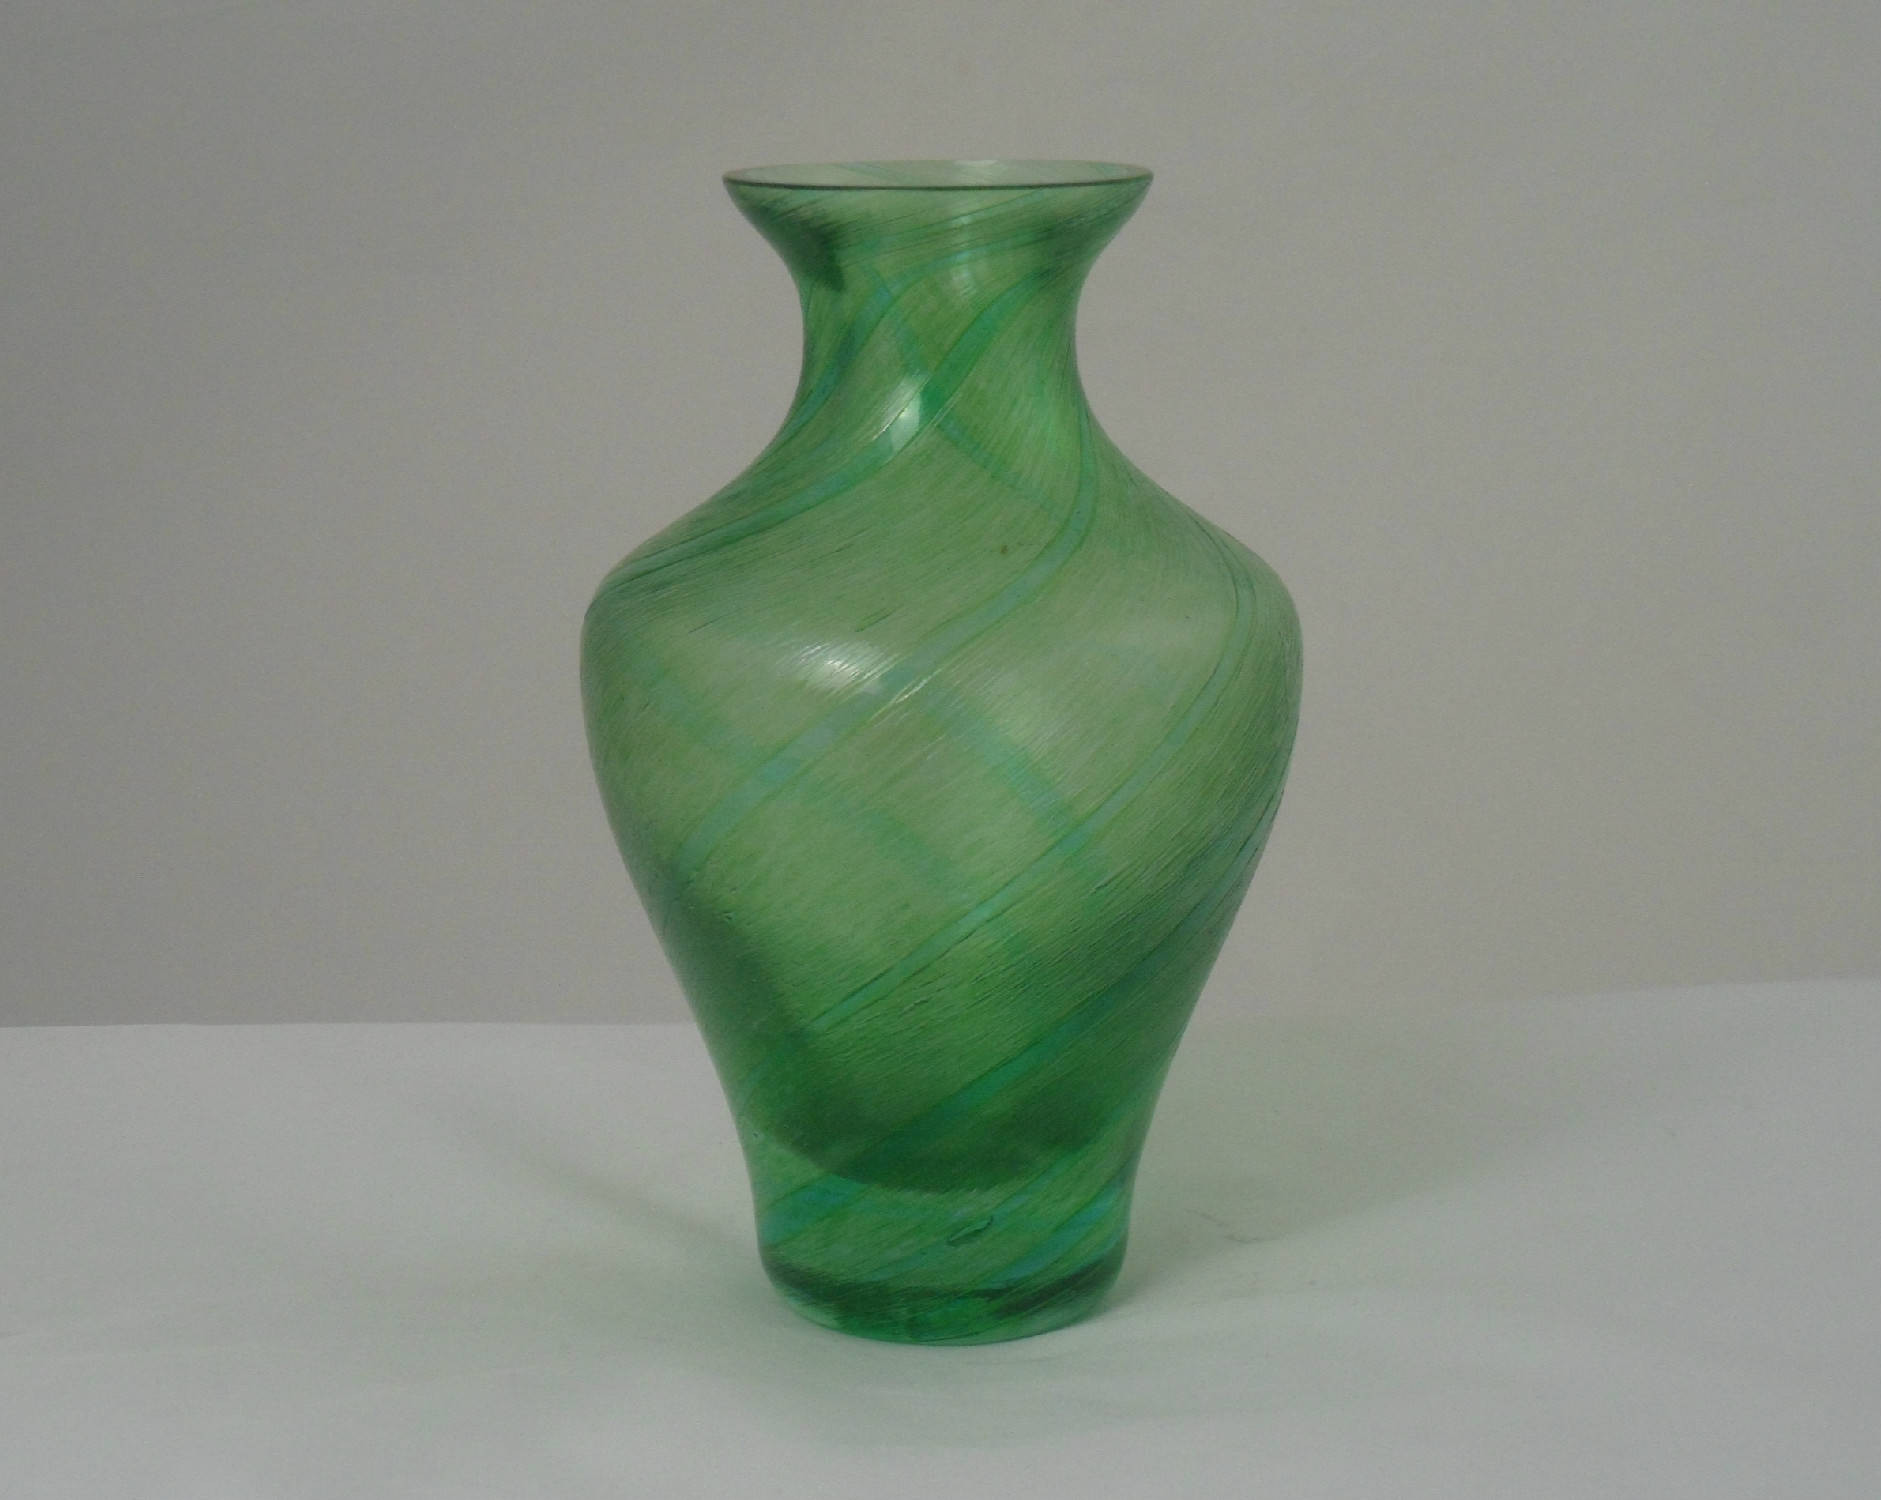 isle of wight glass vase of caithness green glass vase green baluster vase with textured etsy regarding image 0